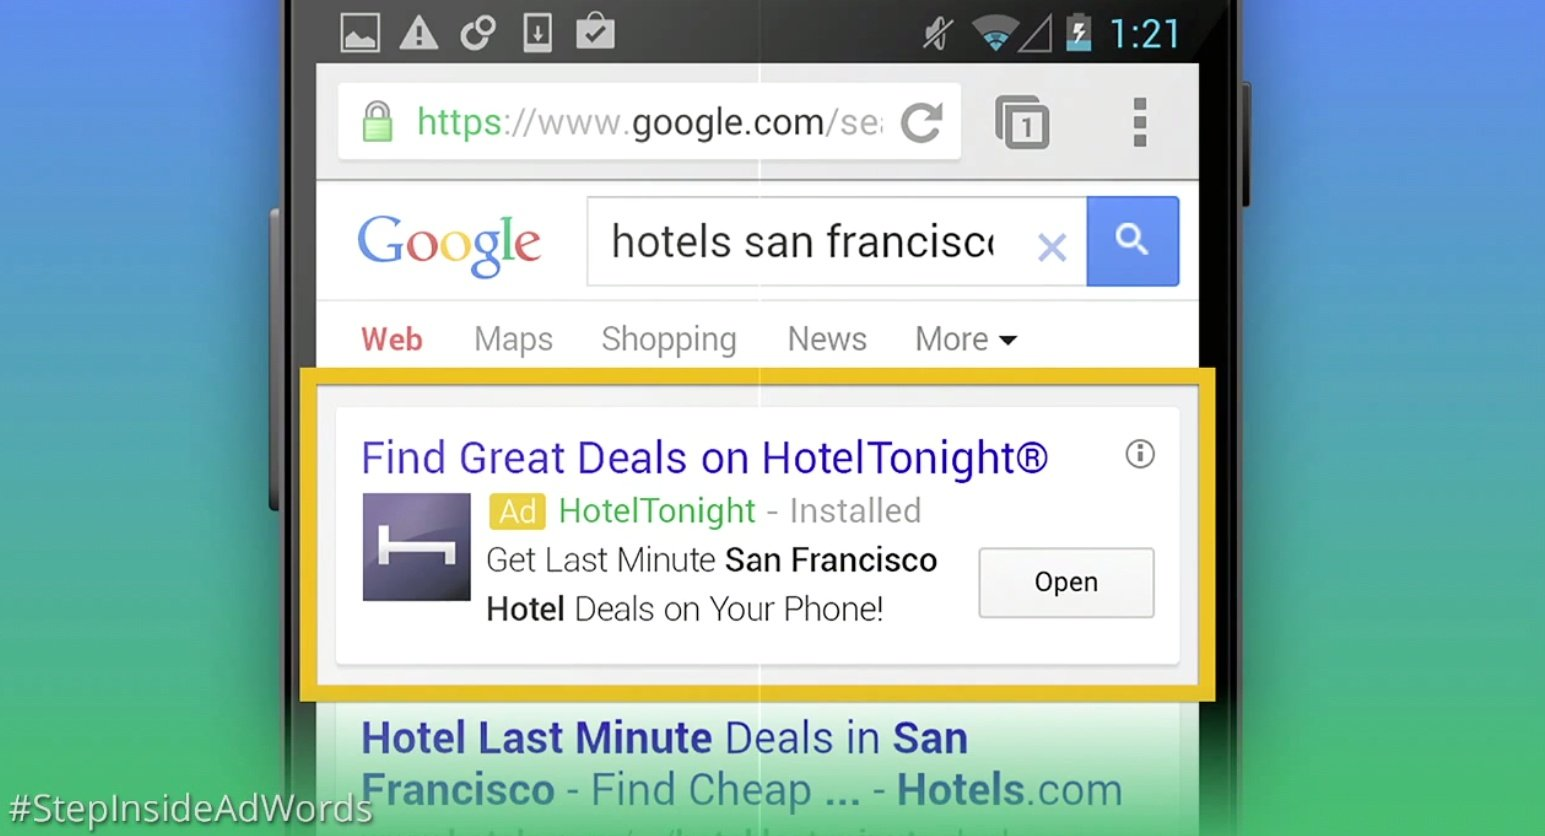 adwords mobile app engagment ad